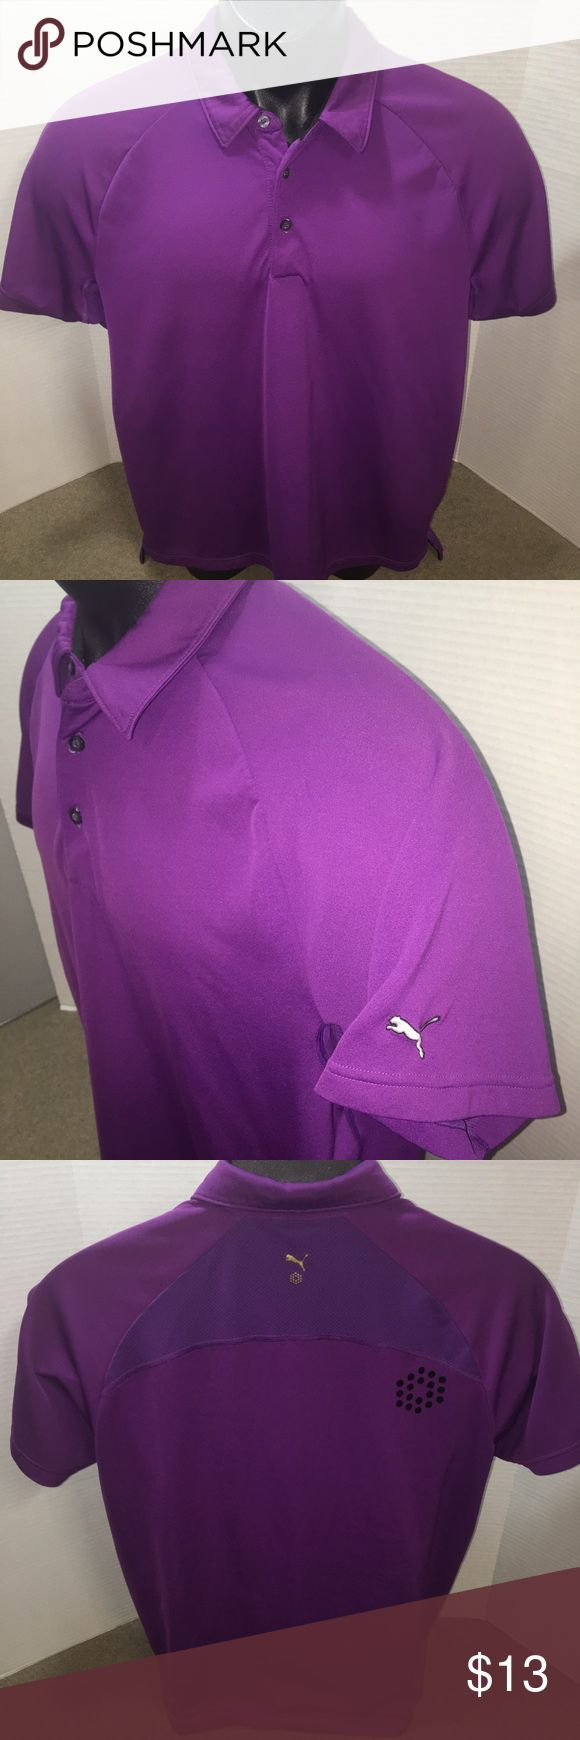 Puma Men's Purple Polo Shirt Size Large In excellent preowned condition. Men's Size Large. Puma - lightweight and breathable. Purple in color Puma Shirts Polos